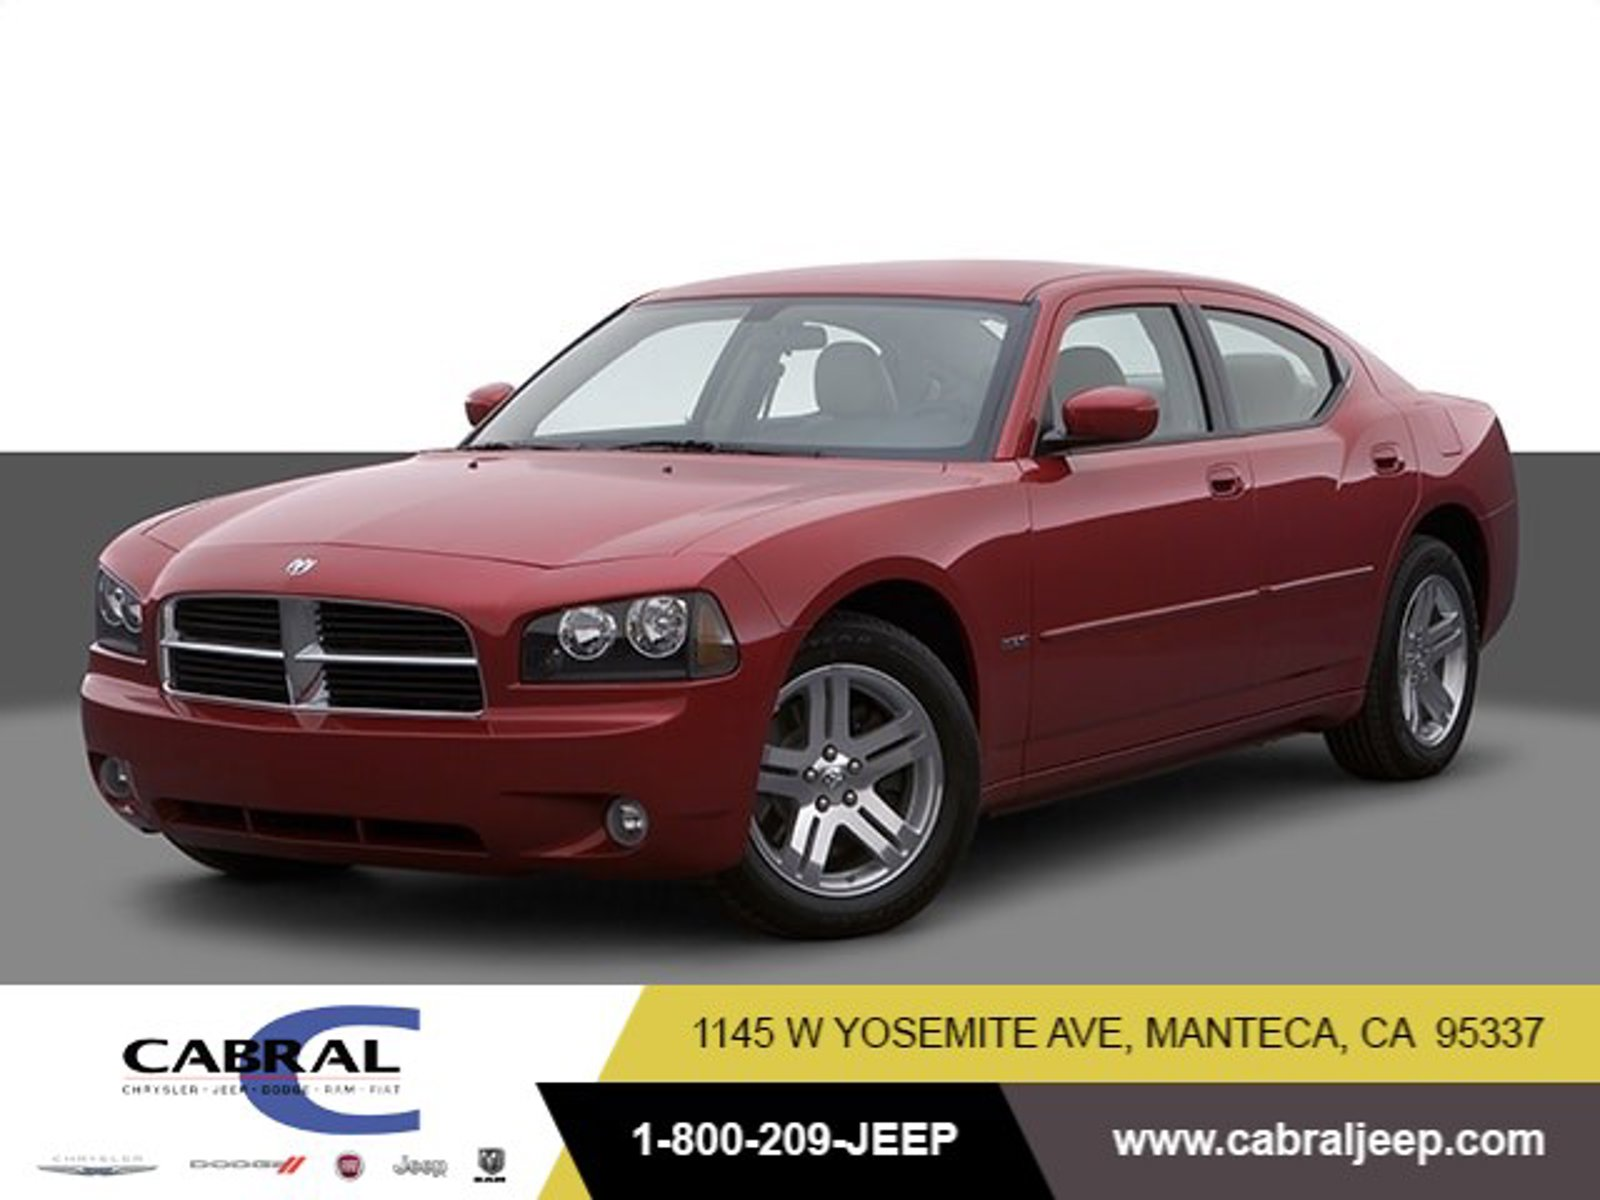 2007 Dodge Charger R/T 4dr Sdn 5-Spd Auto R/T RWD Gas V8 5.7L/345 [7]